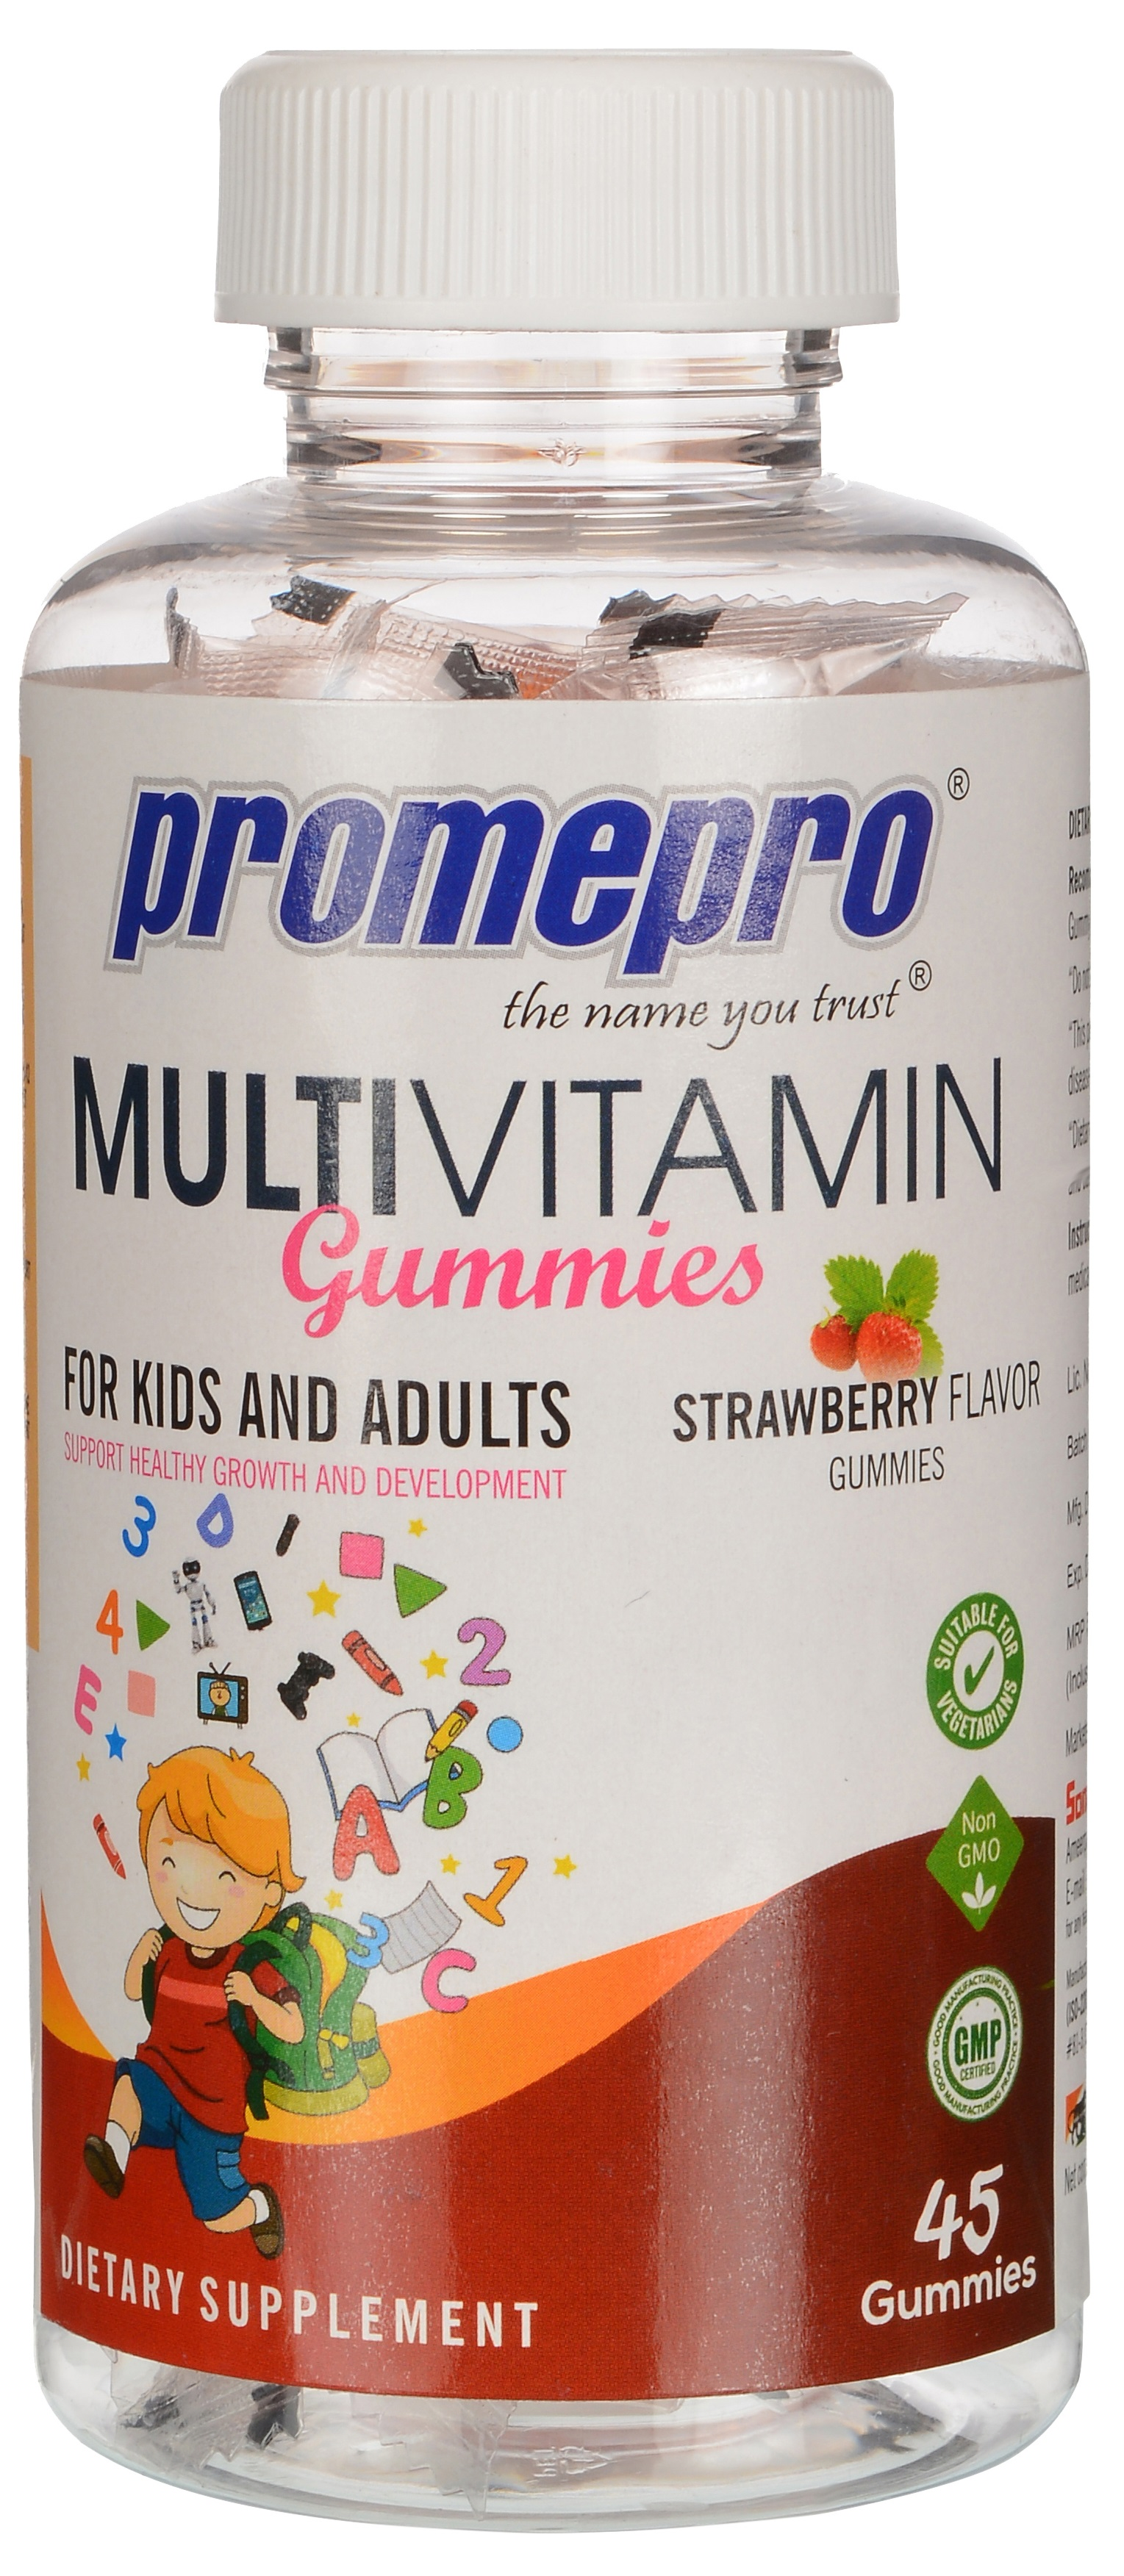 Promepro MULTIVITAMIN STRAWBERRY FLAVOR GUMMIES FOR KIDS AND ADULTS,45 GUMMIES